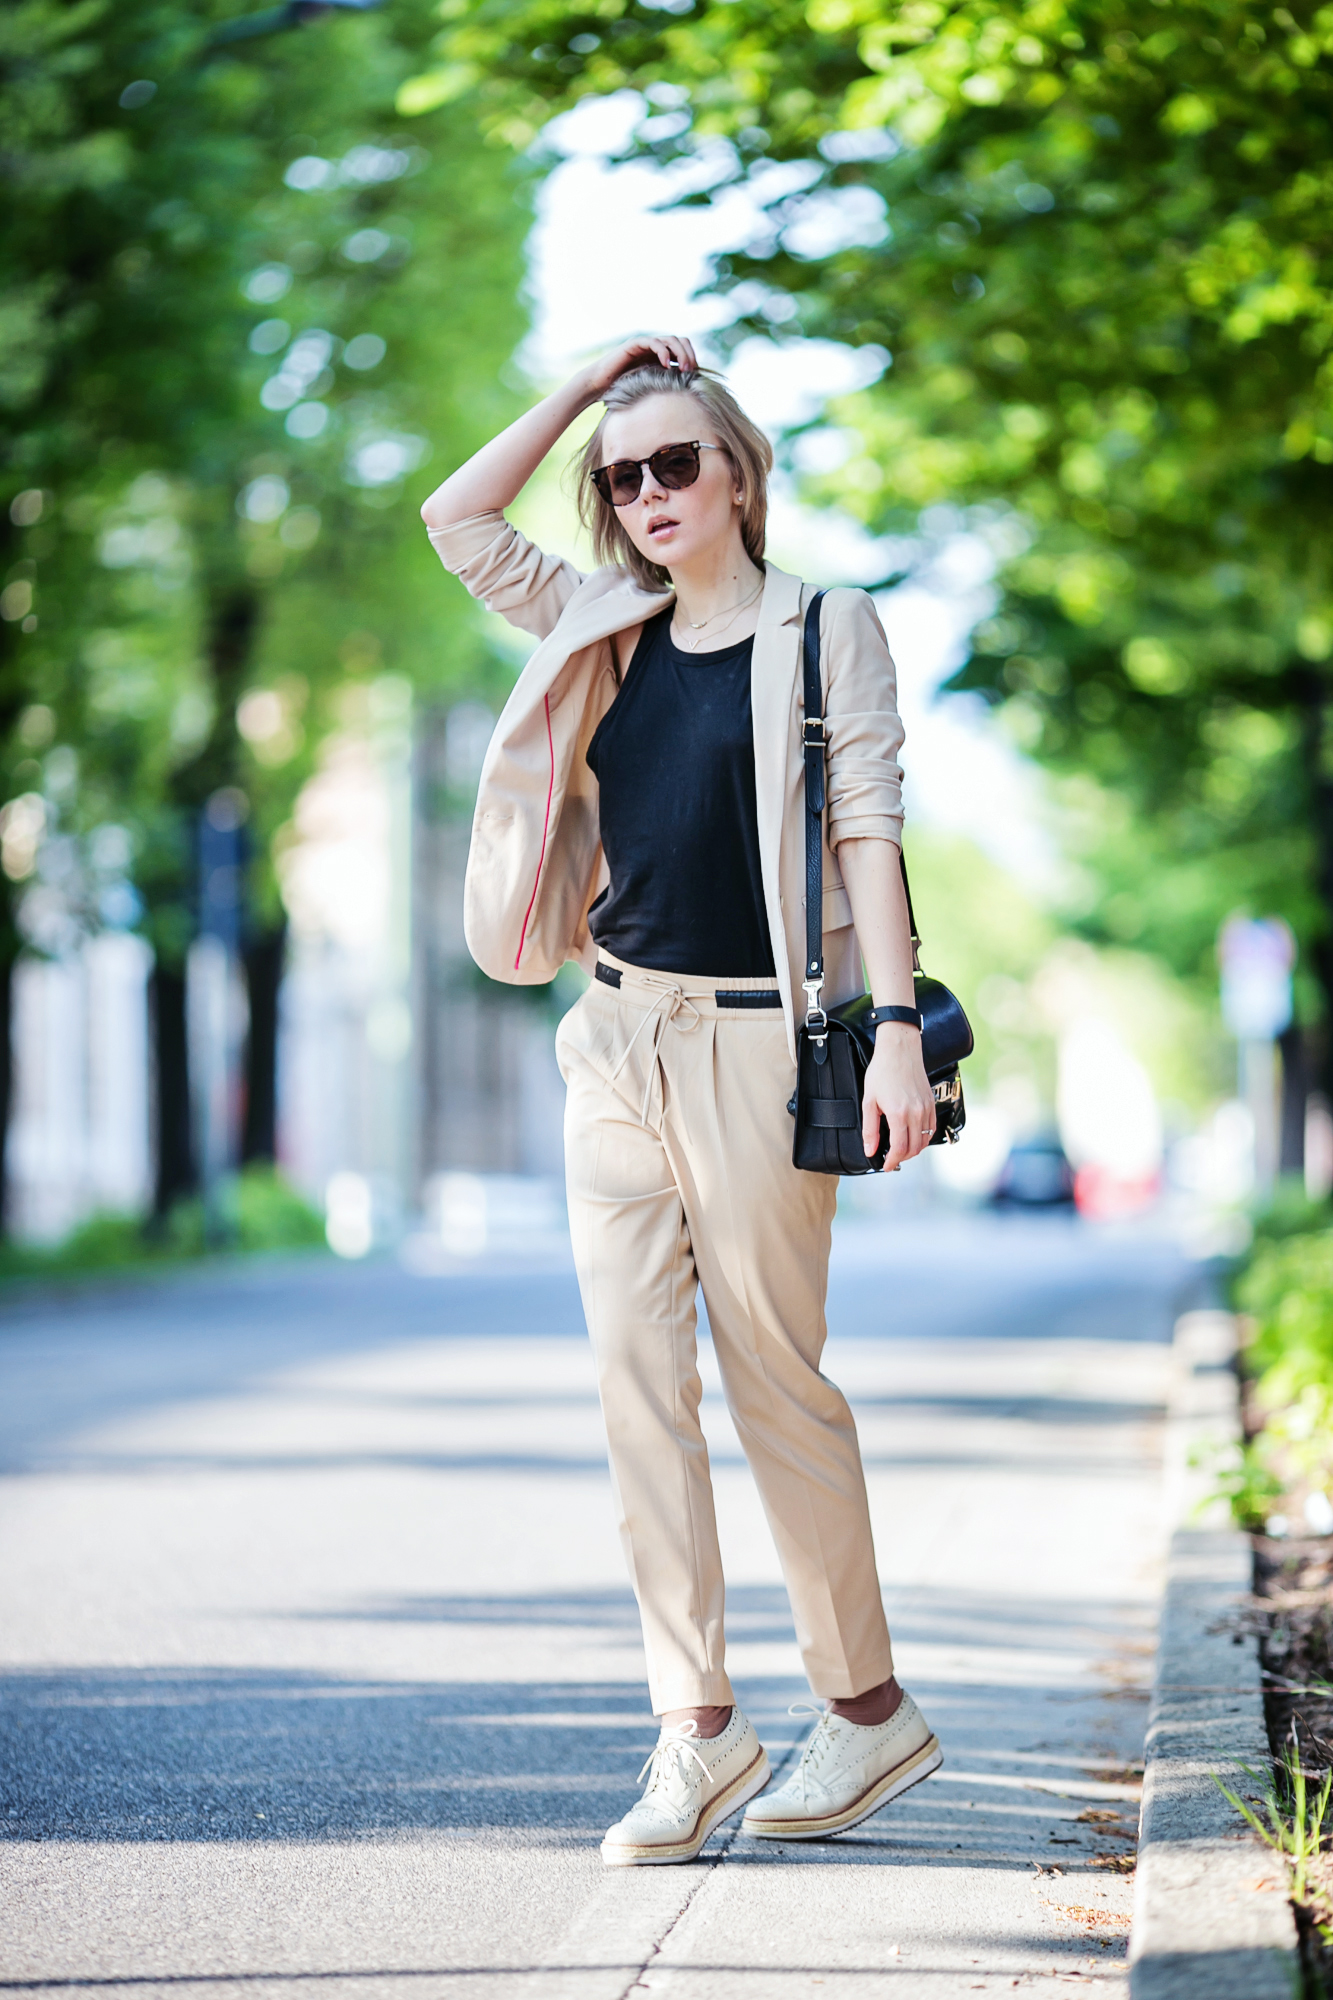 darya kamalova from thecablook com on 1000 chitarre in piazza event in Brescia showing hot to wear a beige suit with pollini brogues and proenza schouler ps11 bag-46 copy